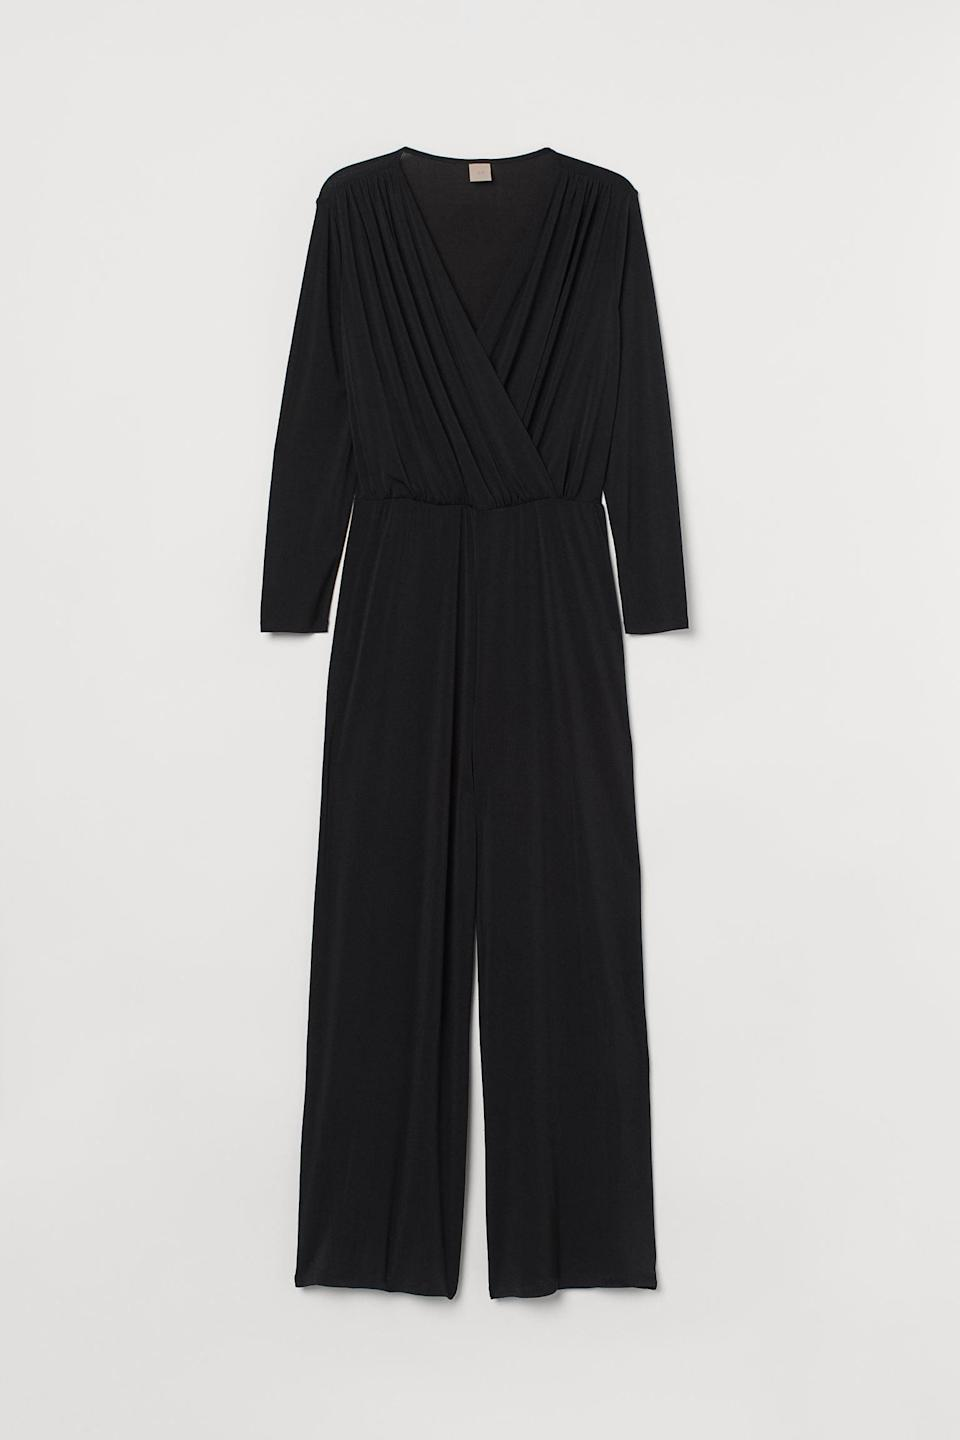 <p>There are so many ways to style this <span>H&amp;M+ V-Neck Jumpsuit </span> ($17, originally $35).</p>